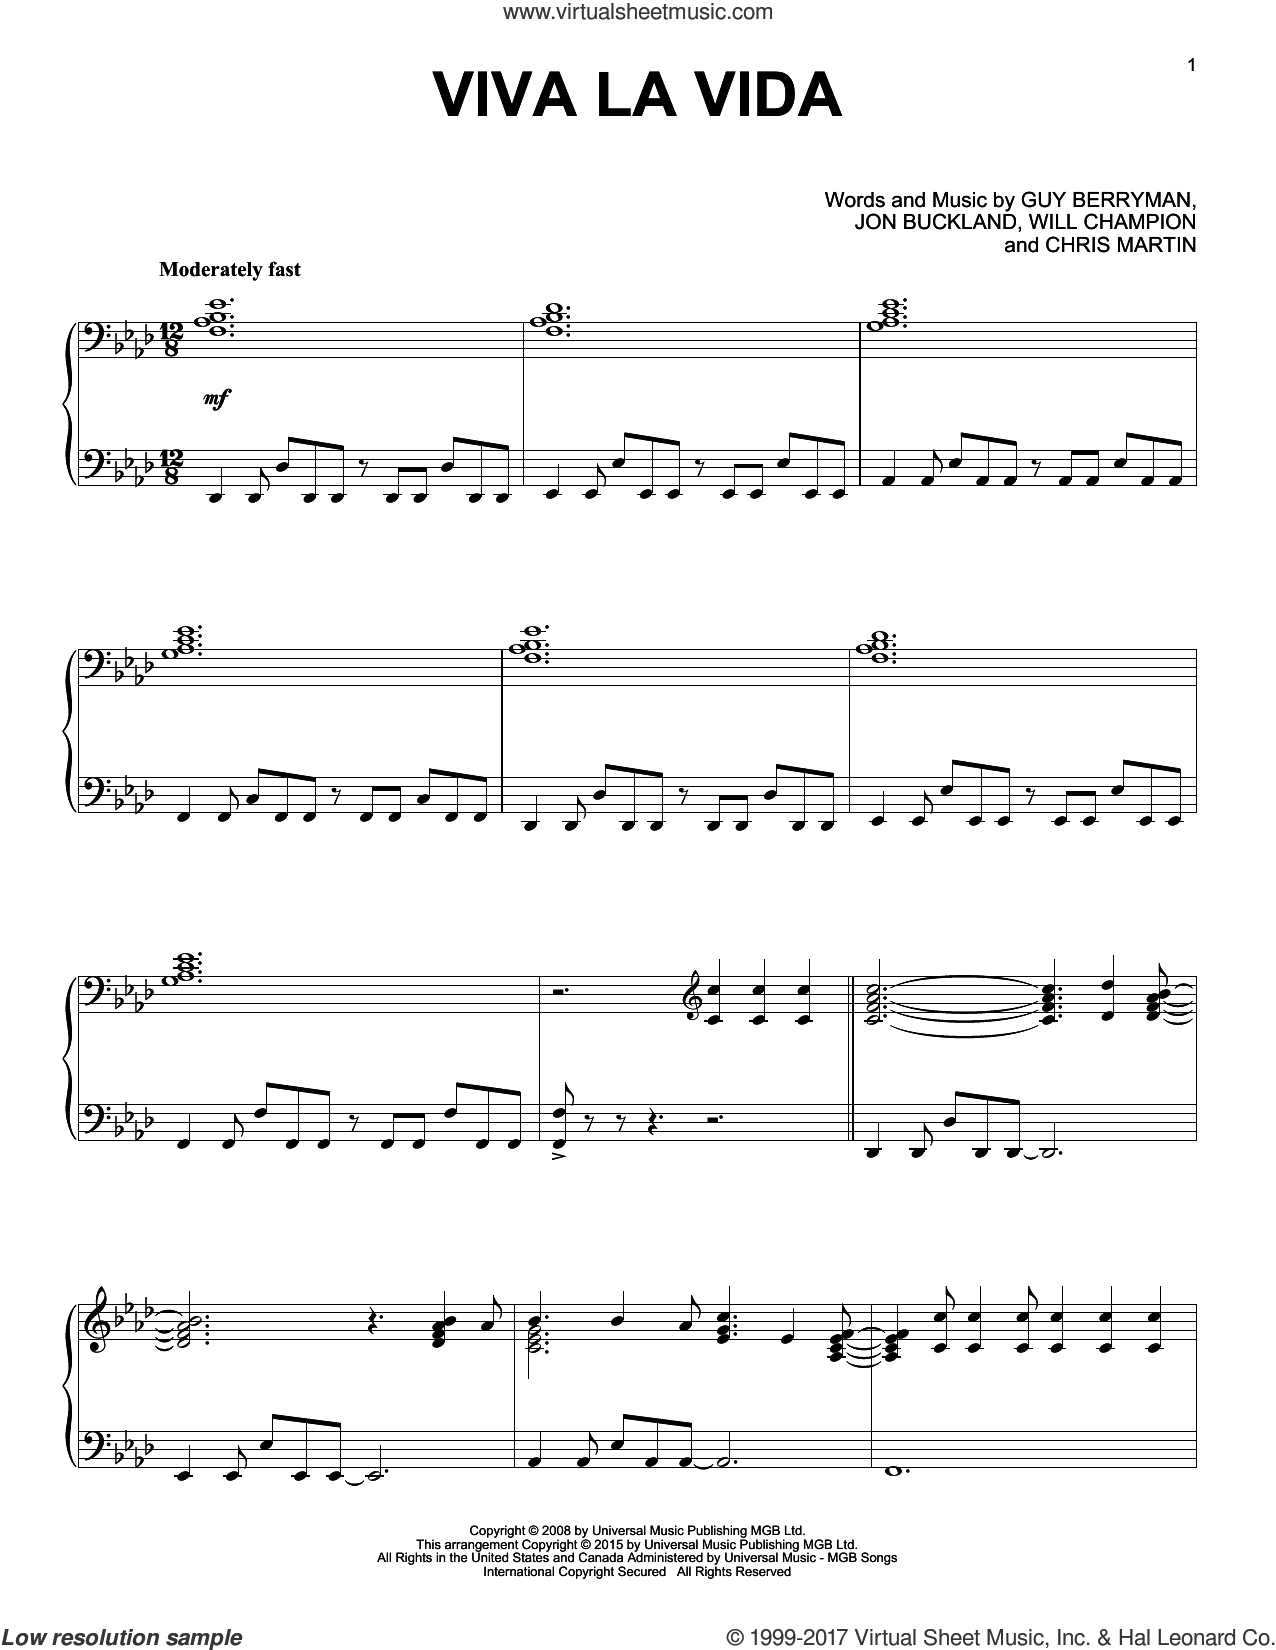 Viva La Vida [Jazz version] sheet music for piano solo by Coldplay, Chris Martin, Guy Berryman, Jon Buckland and Will Champion, intermediate skill level